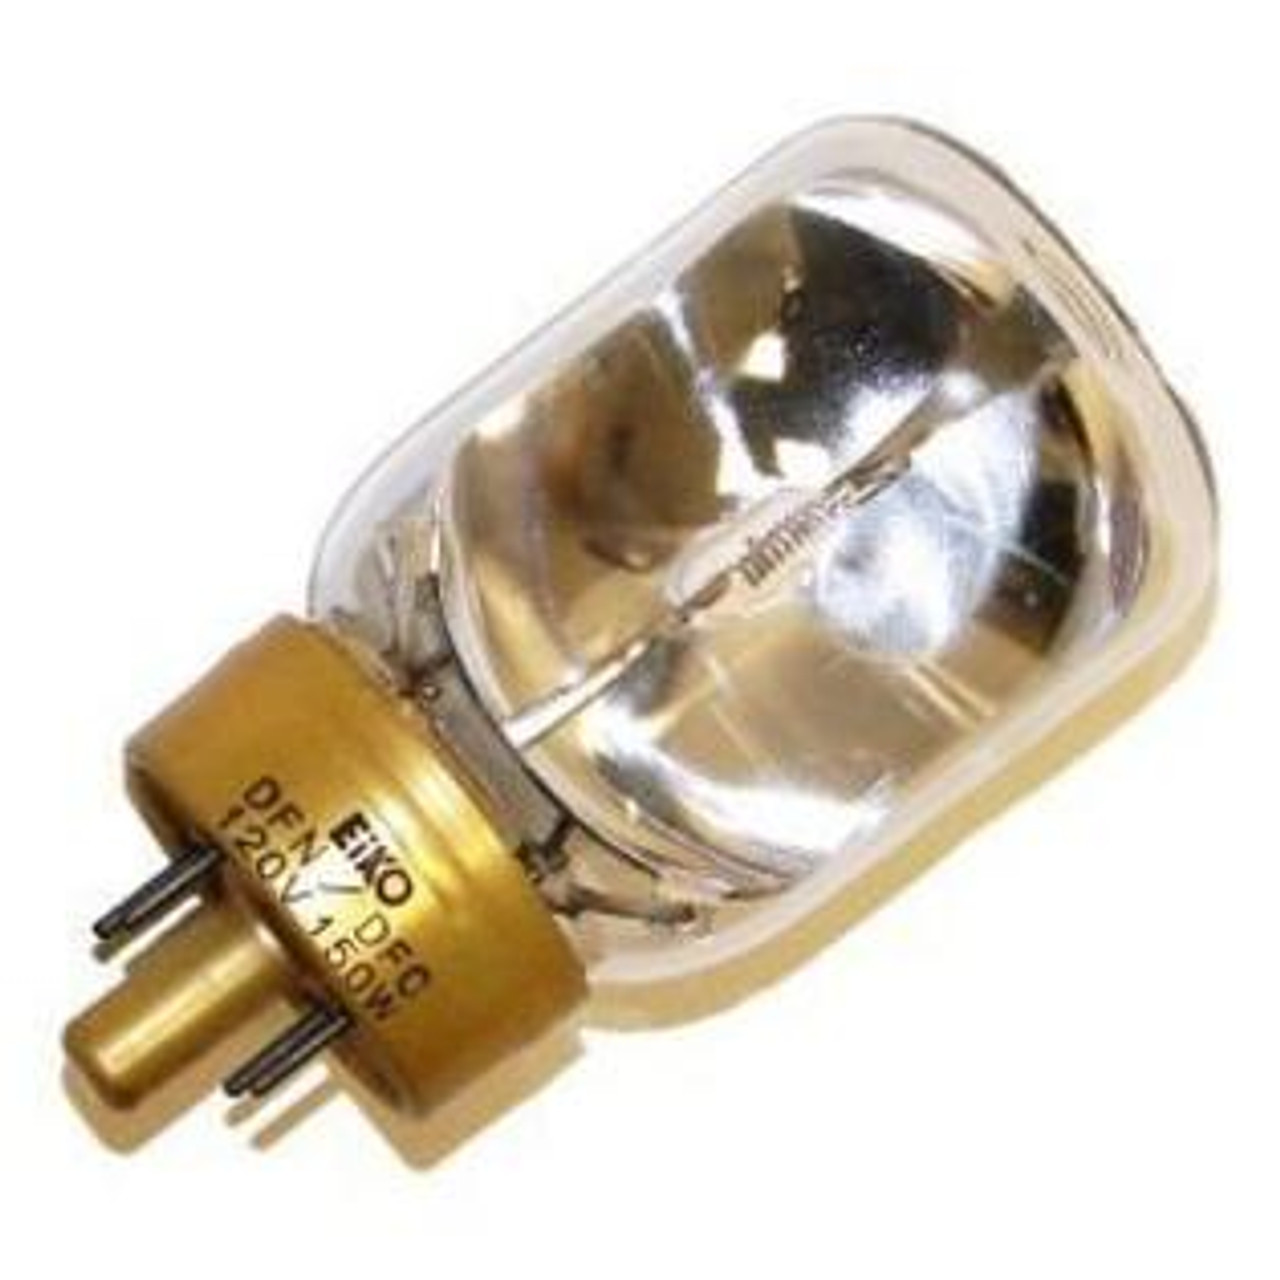 Sears Roebuck and Company - Automatic 9292, 9270, 9271 - 8mm Movie Projector - Replacement Bulb Model- DFN/DFC